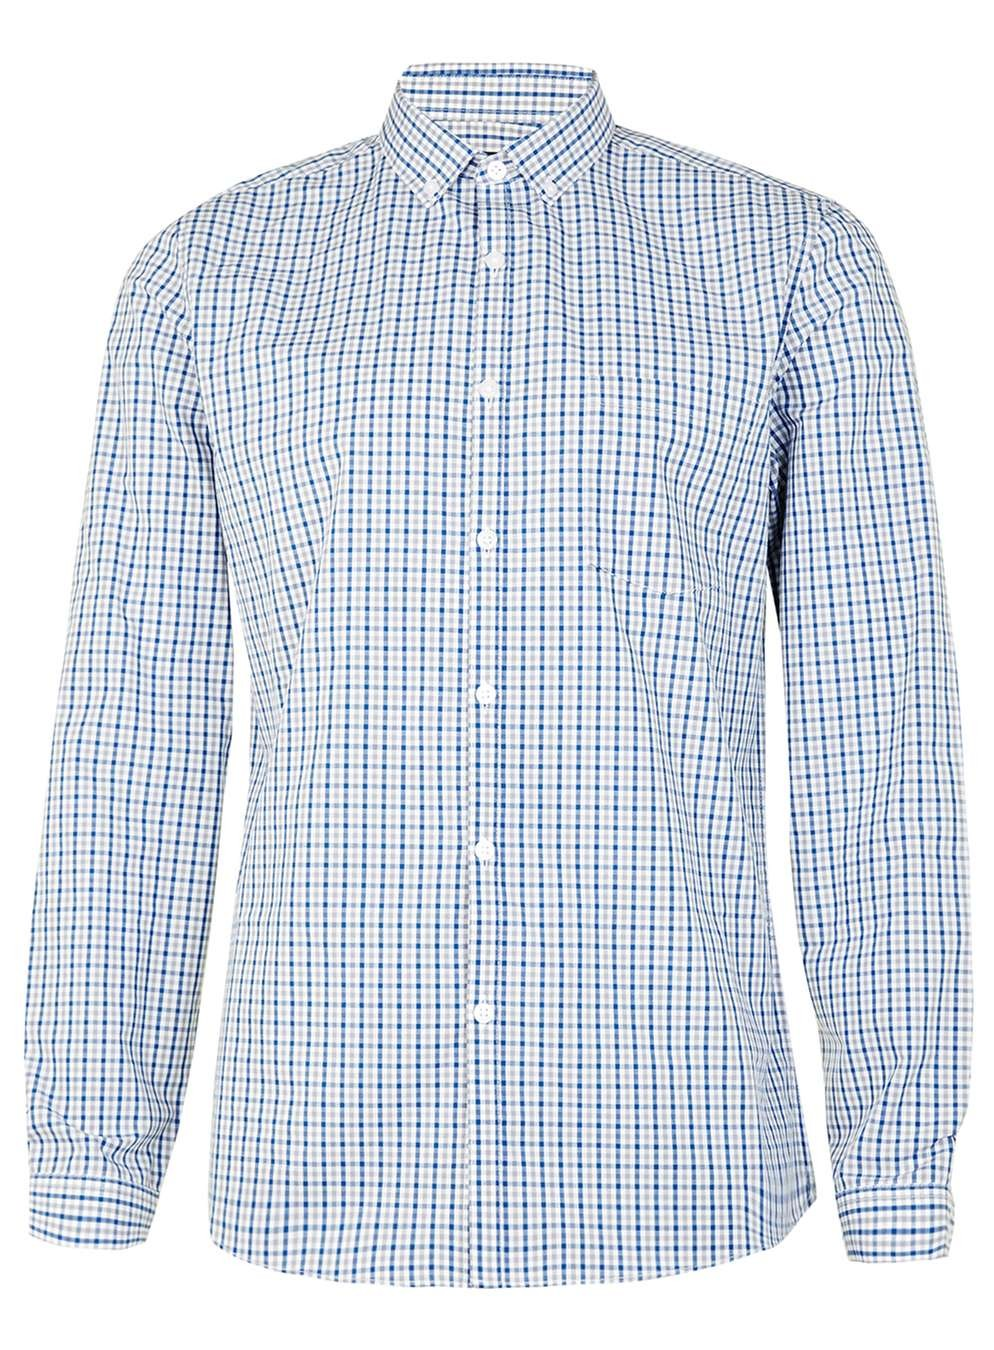 OEM Service Blue And Grey Gingham Button Down Collar Mens Shirt